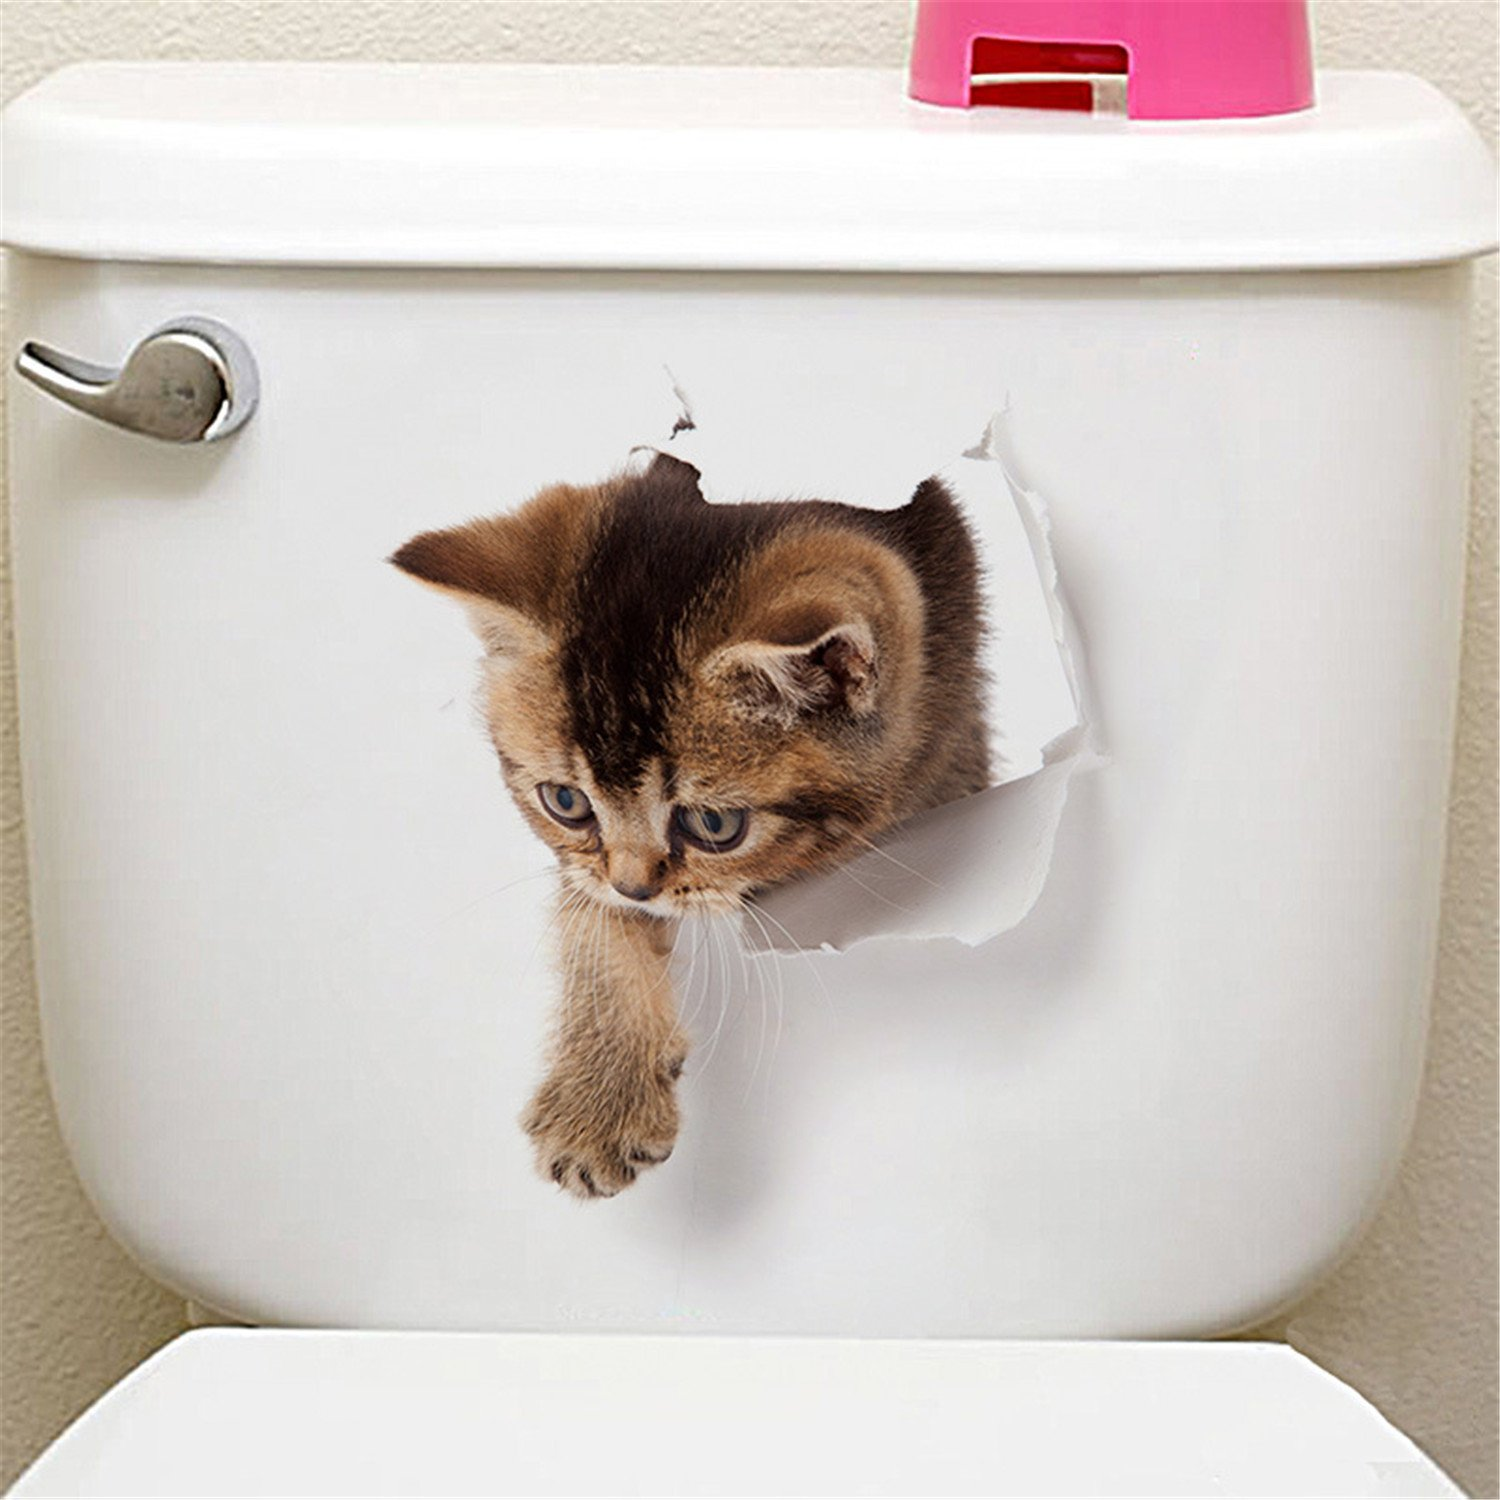 Cats 3D Wall Sticker Toilet Stickers Hole View Vivid Dogs Bathroom Home Decoration Animal Vinyl Decals Art Sticker Wall Poster Cat 11